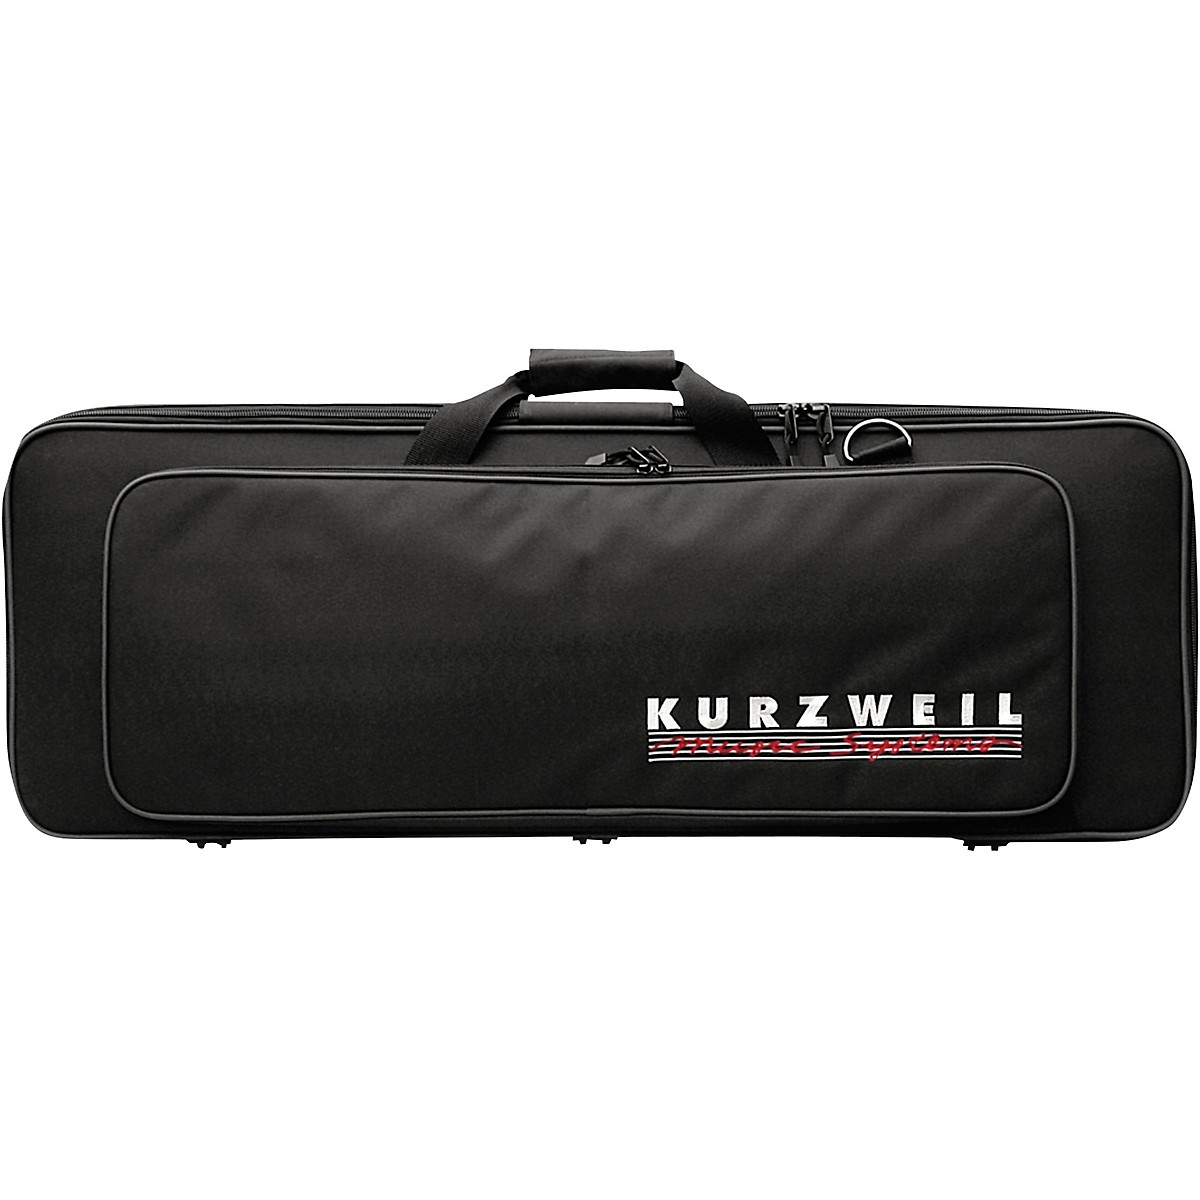 Kurzweil KB61 Series Gig Bag